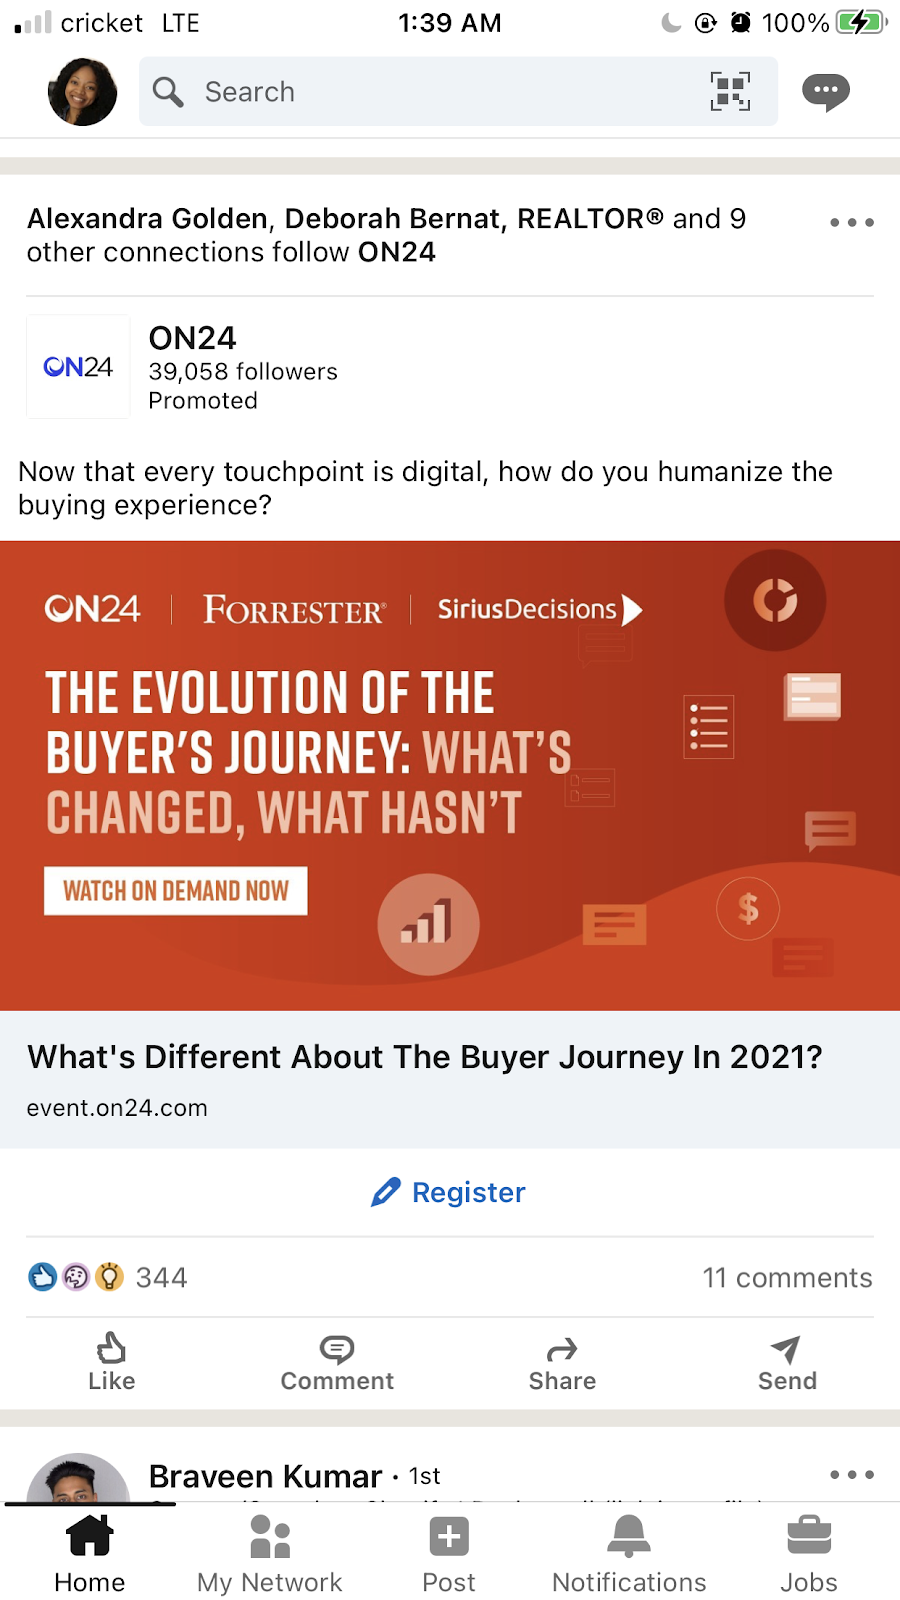 On24 LinkedIn ad about a webinar on the topic of the evolution of the buyers journey